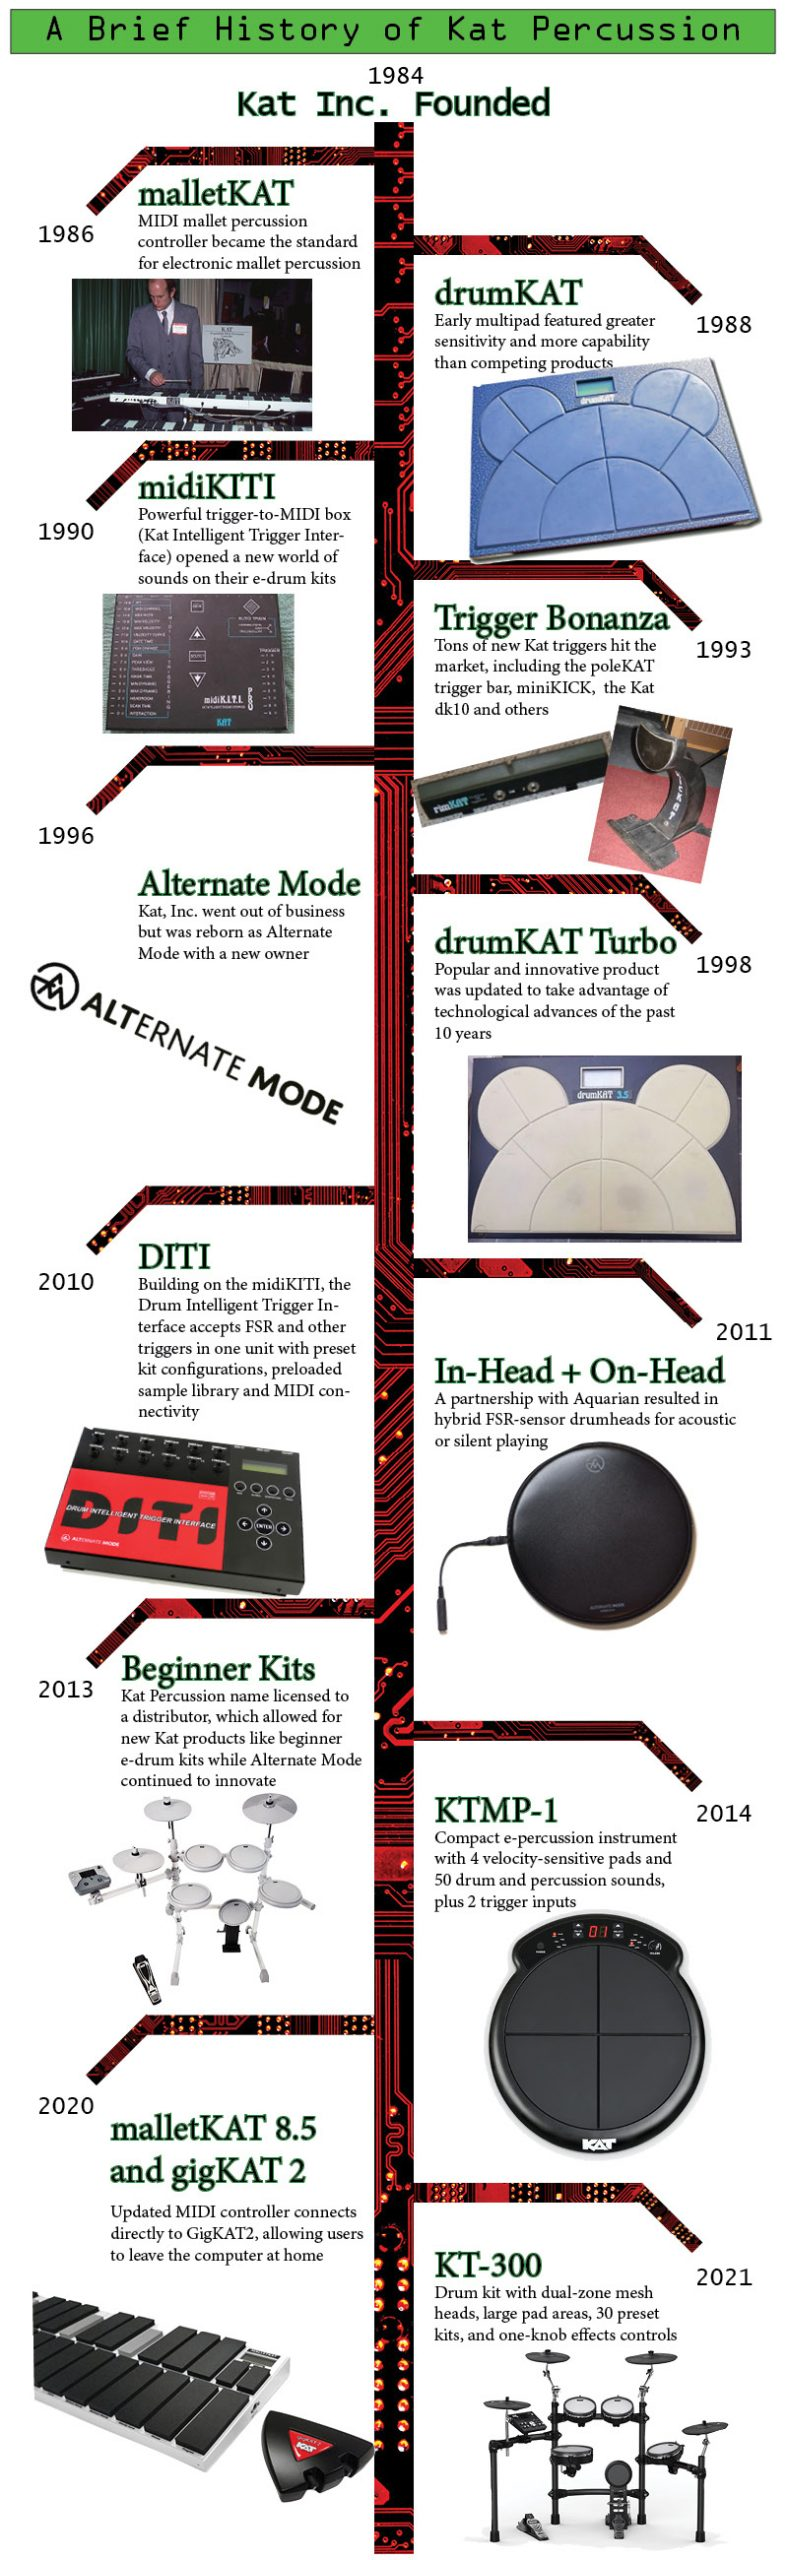 kat percussion brief history timeline